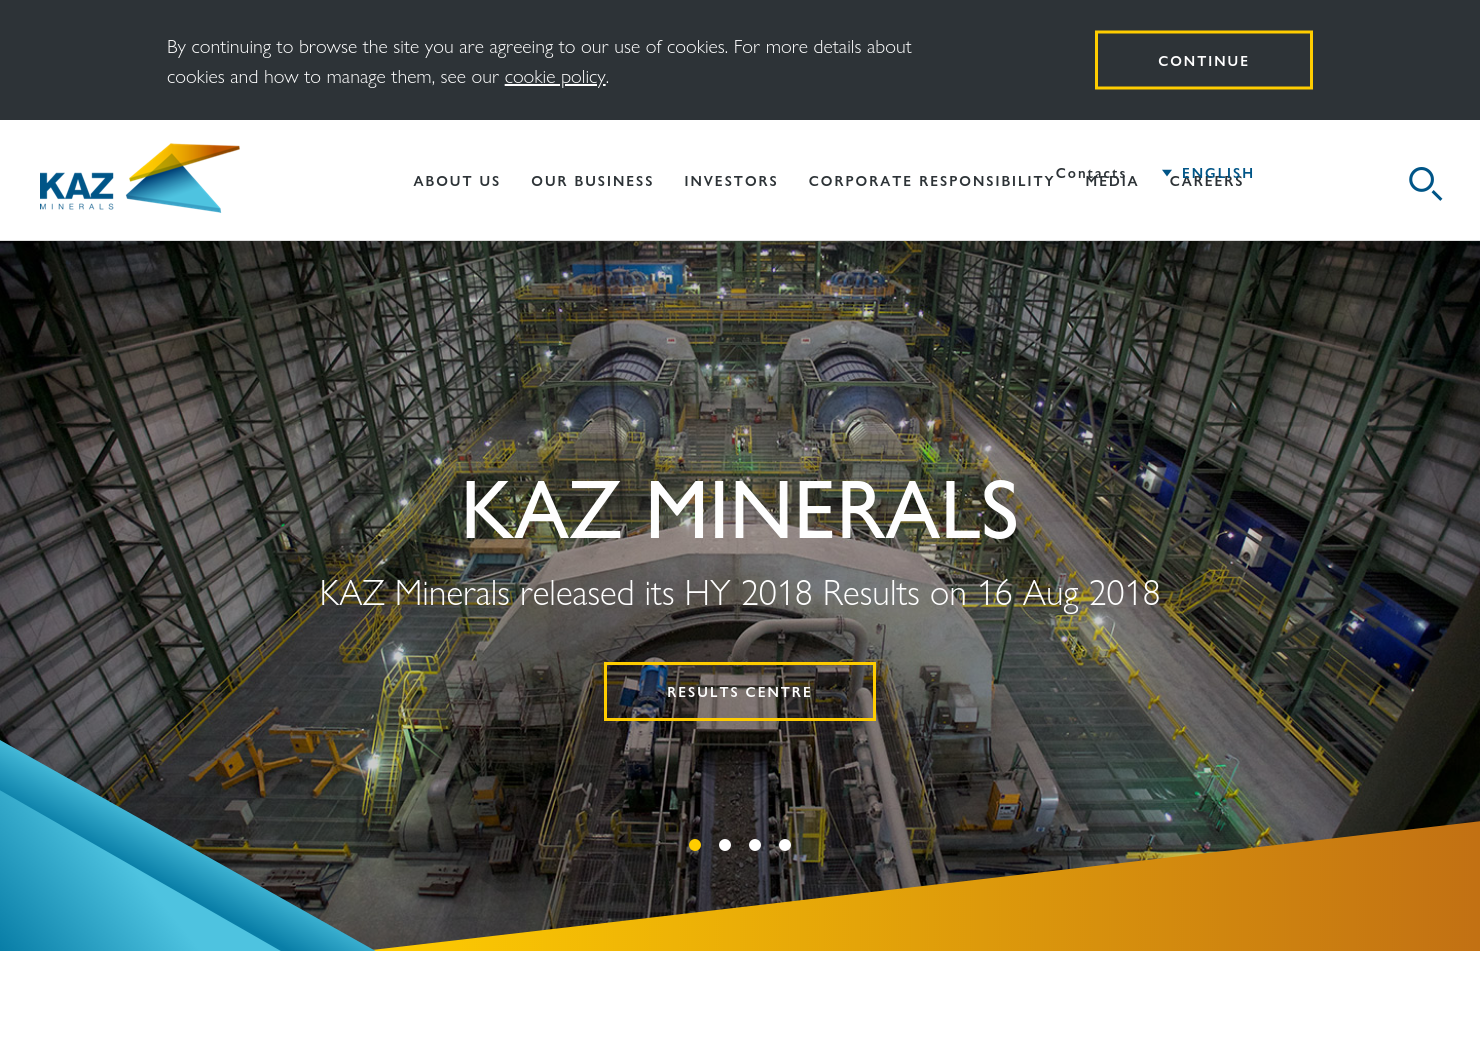 KAZ Minerals Home Page